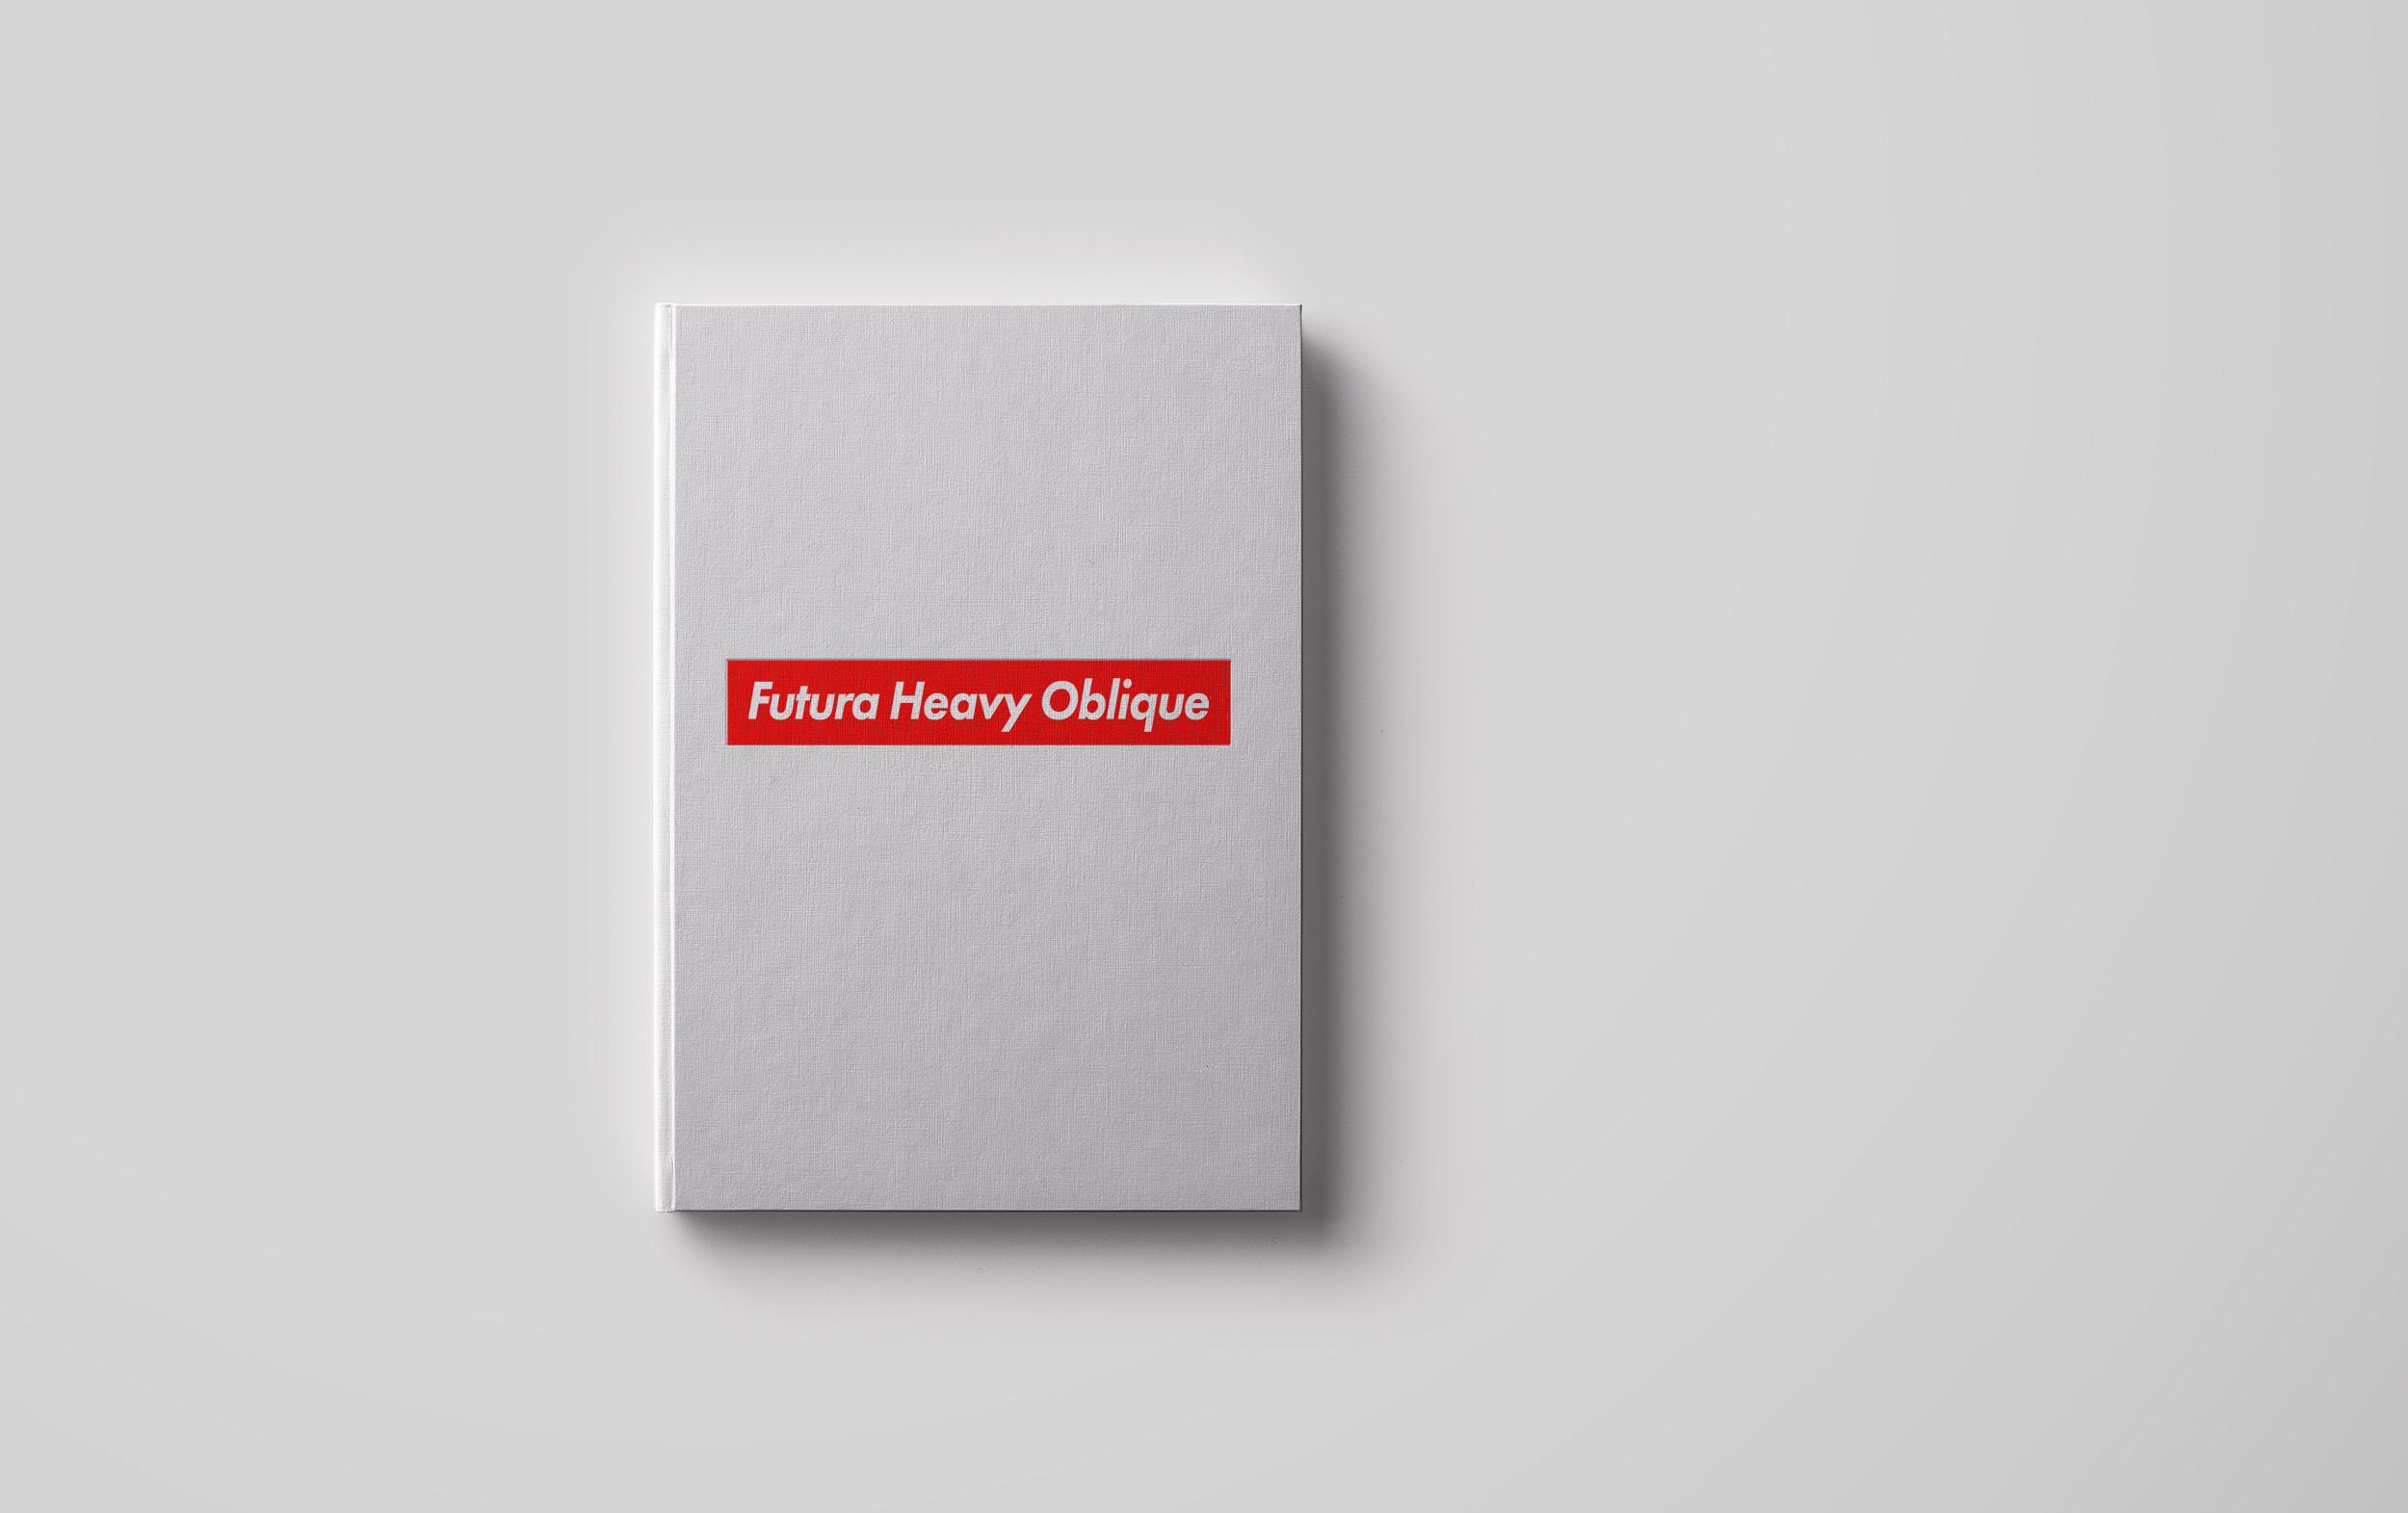 futura-heavy-oblique-book